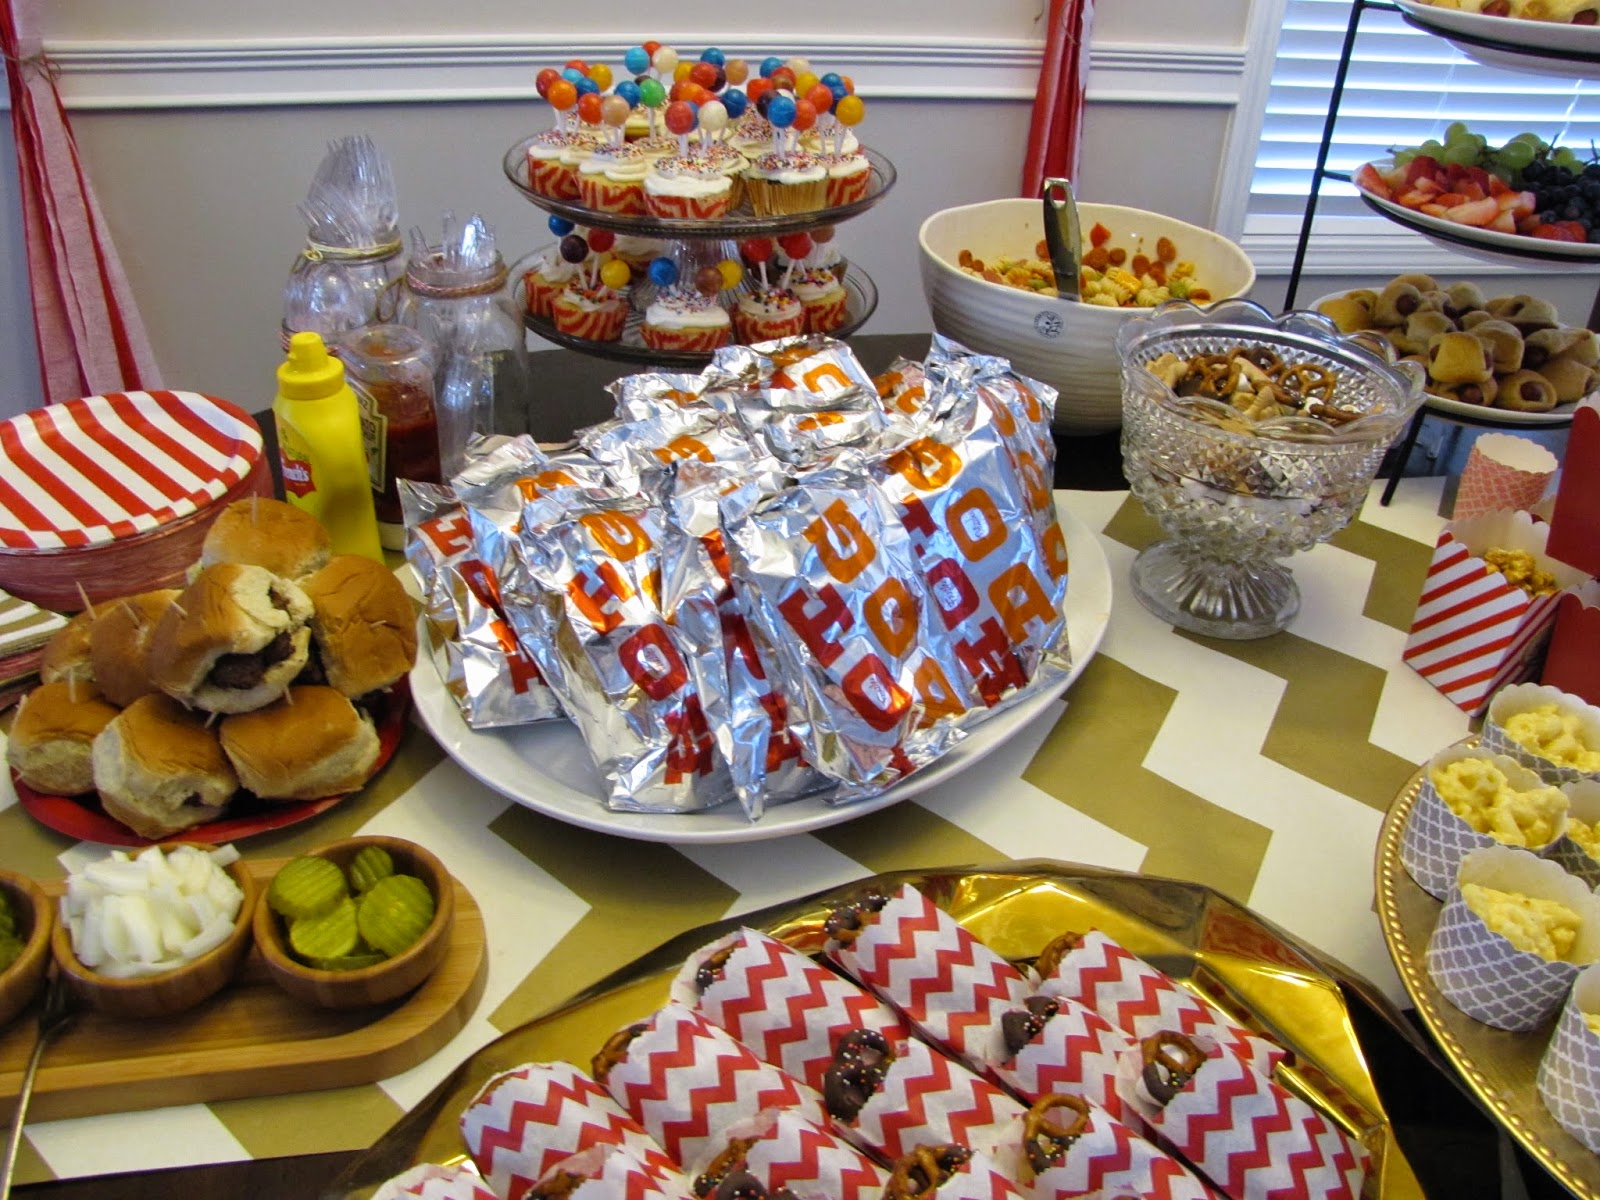 chick blog the circus birthday top party big decor ideas carnival that food under decorations popcorn bar